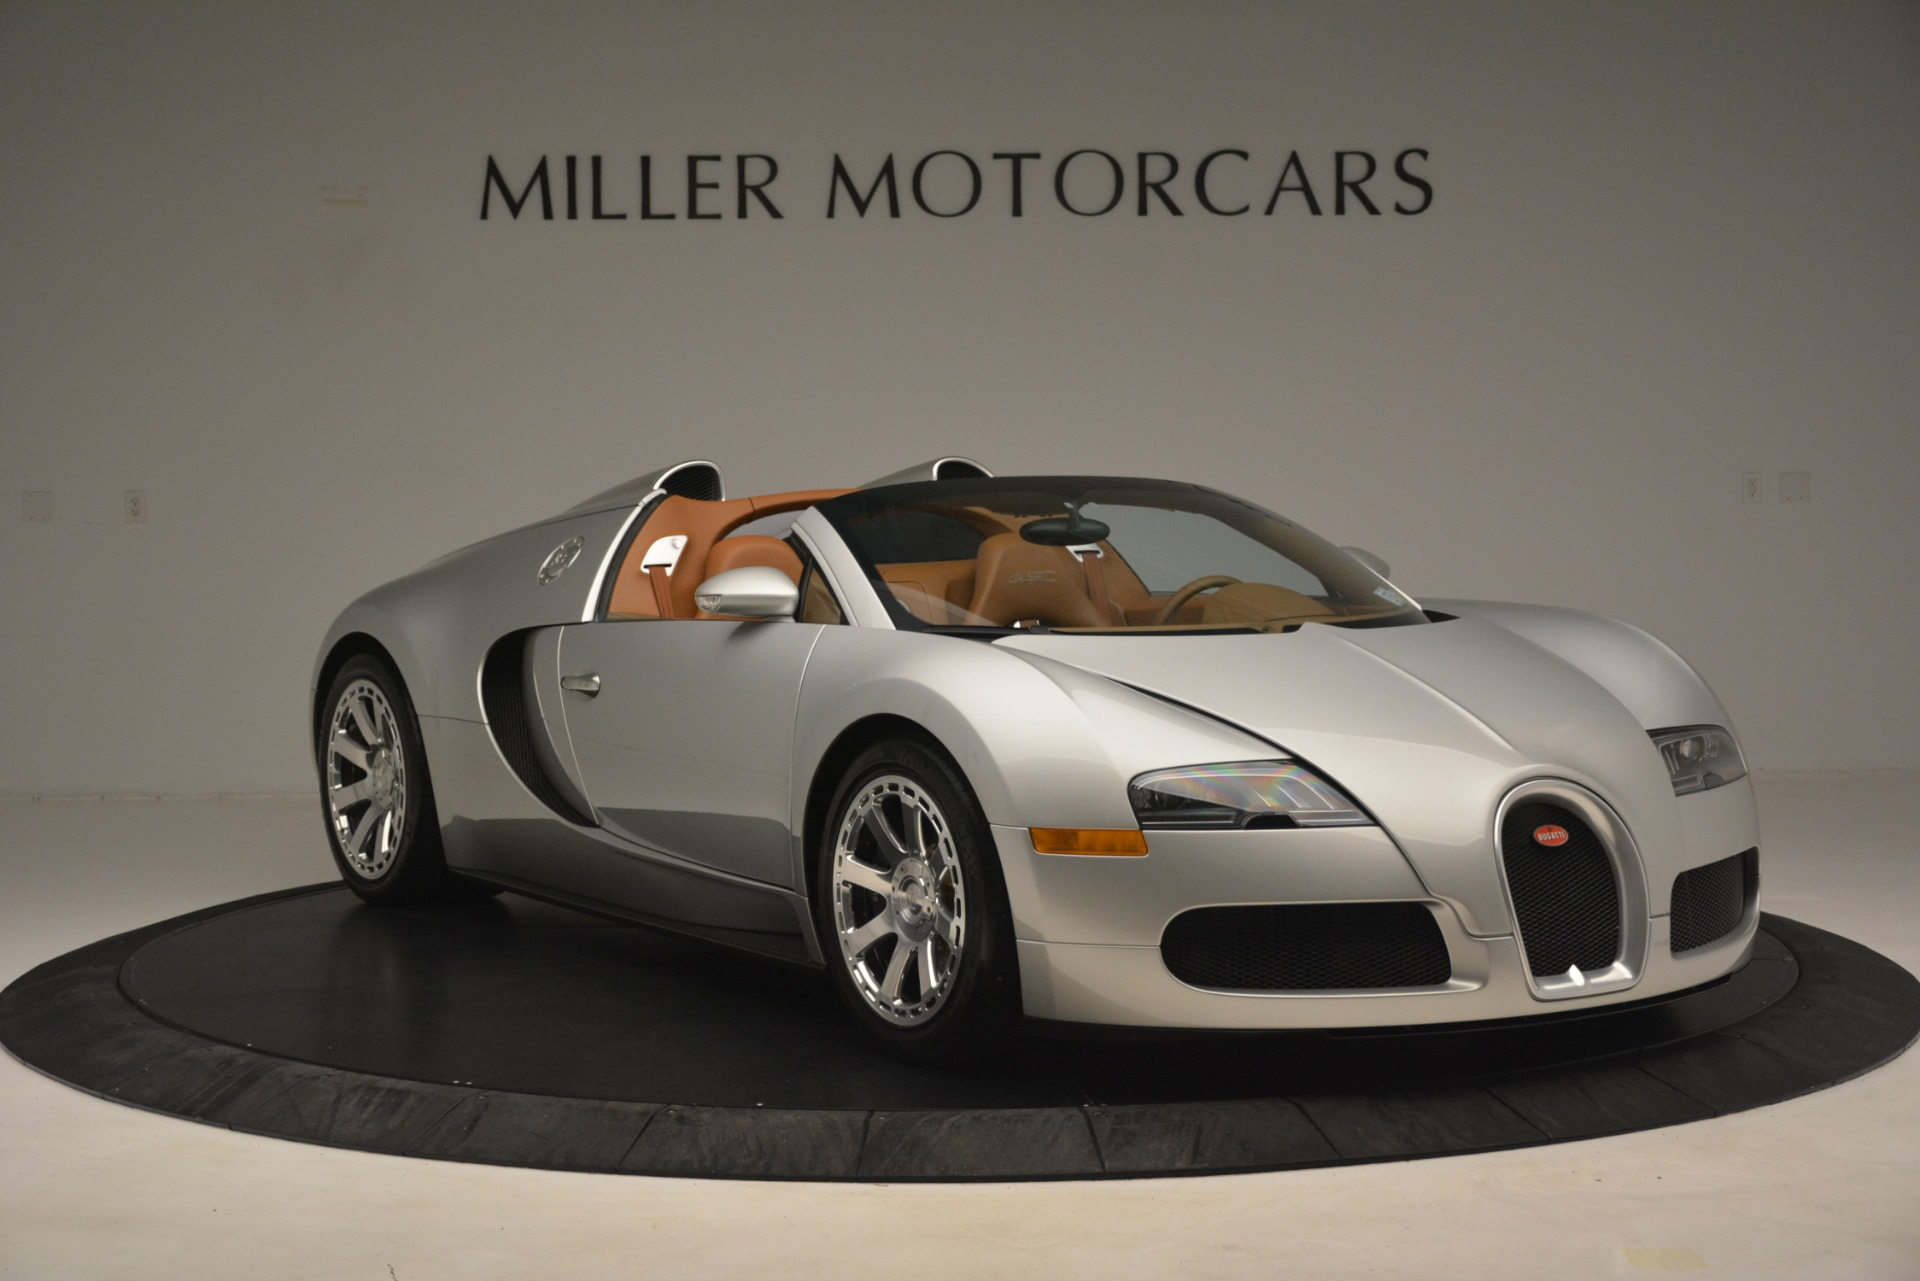 Used 2010 Bugatti Veyron 16.4 Grand Sport For Sale In Westport, CT 3159_p12